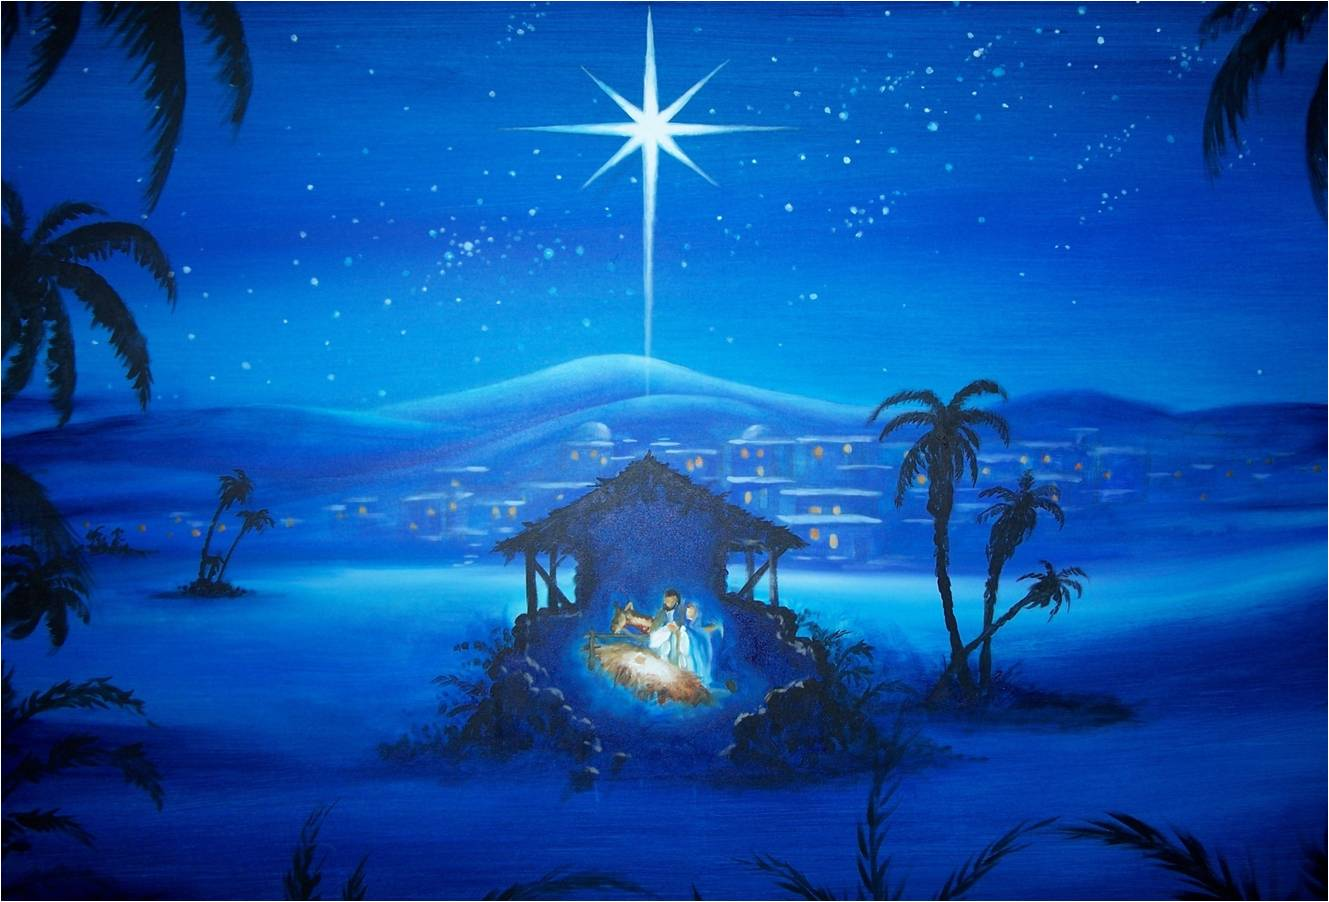 1329x902 Nativity Scene Wallpaper | Christmas Painting Computer Wallpapers ...